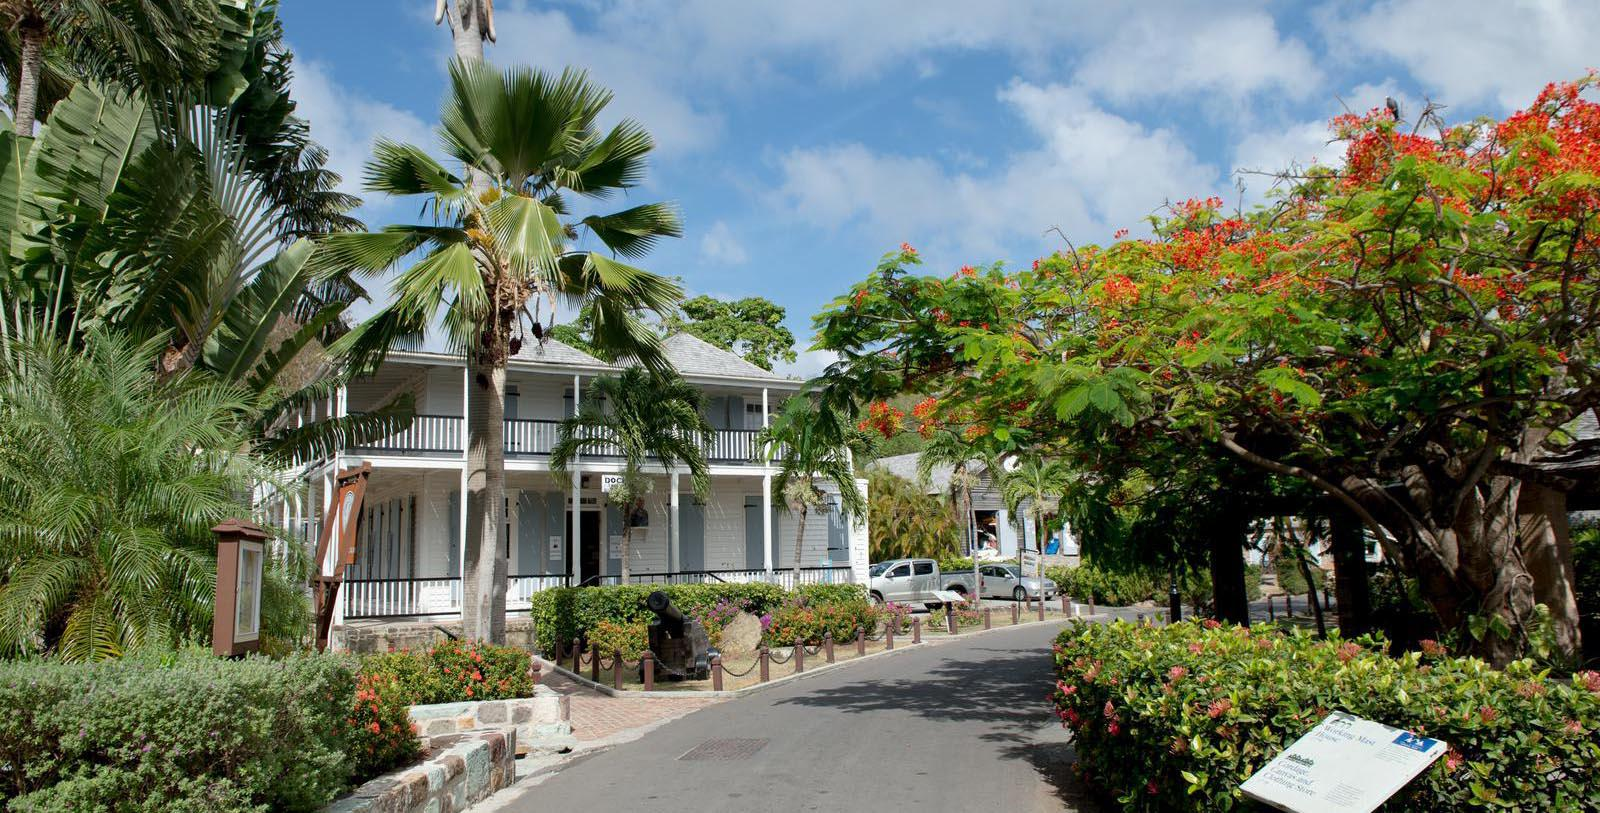 Image of hotel exterior Copper and Lumber Store Historic Inn, 1789, Member of Historic Hotels Worldwide, in English Harbour, Antigua and Barbuda, Special Offers, Discounted Rates, Families, Romantic Escape, Honeymoons, Anniversaries, Reunions